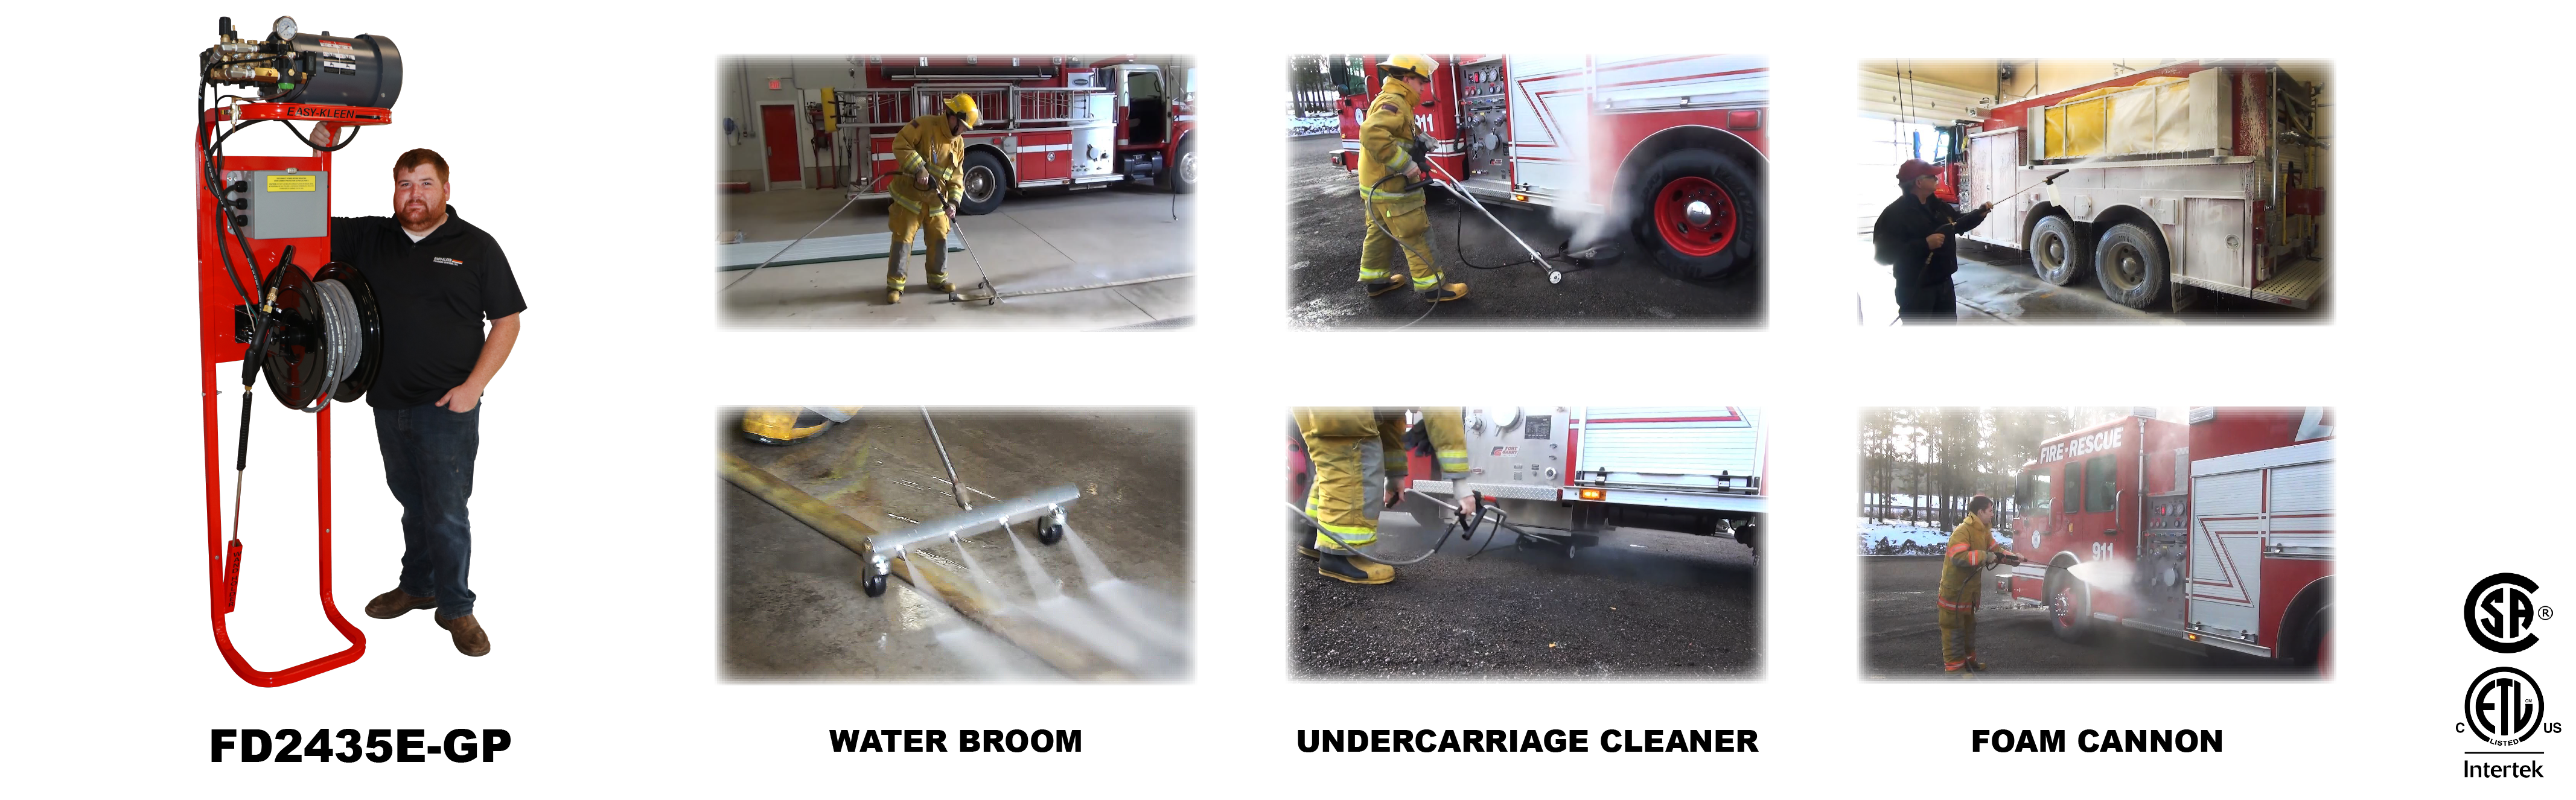 firehousecardetailingseries-01.png